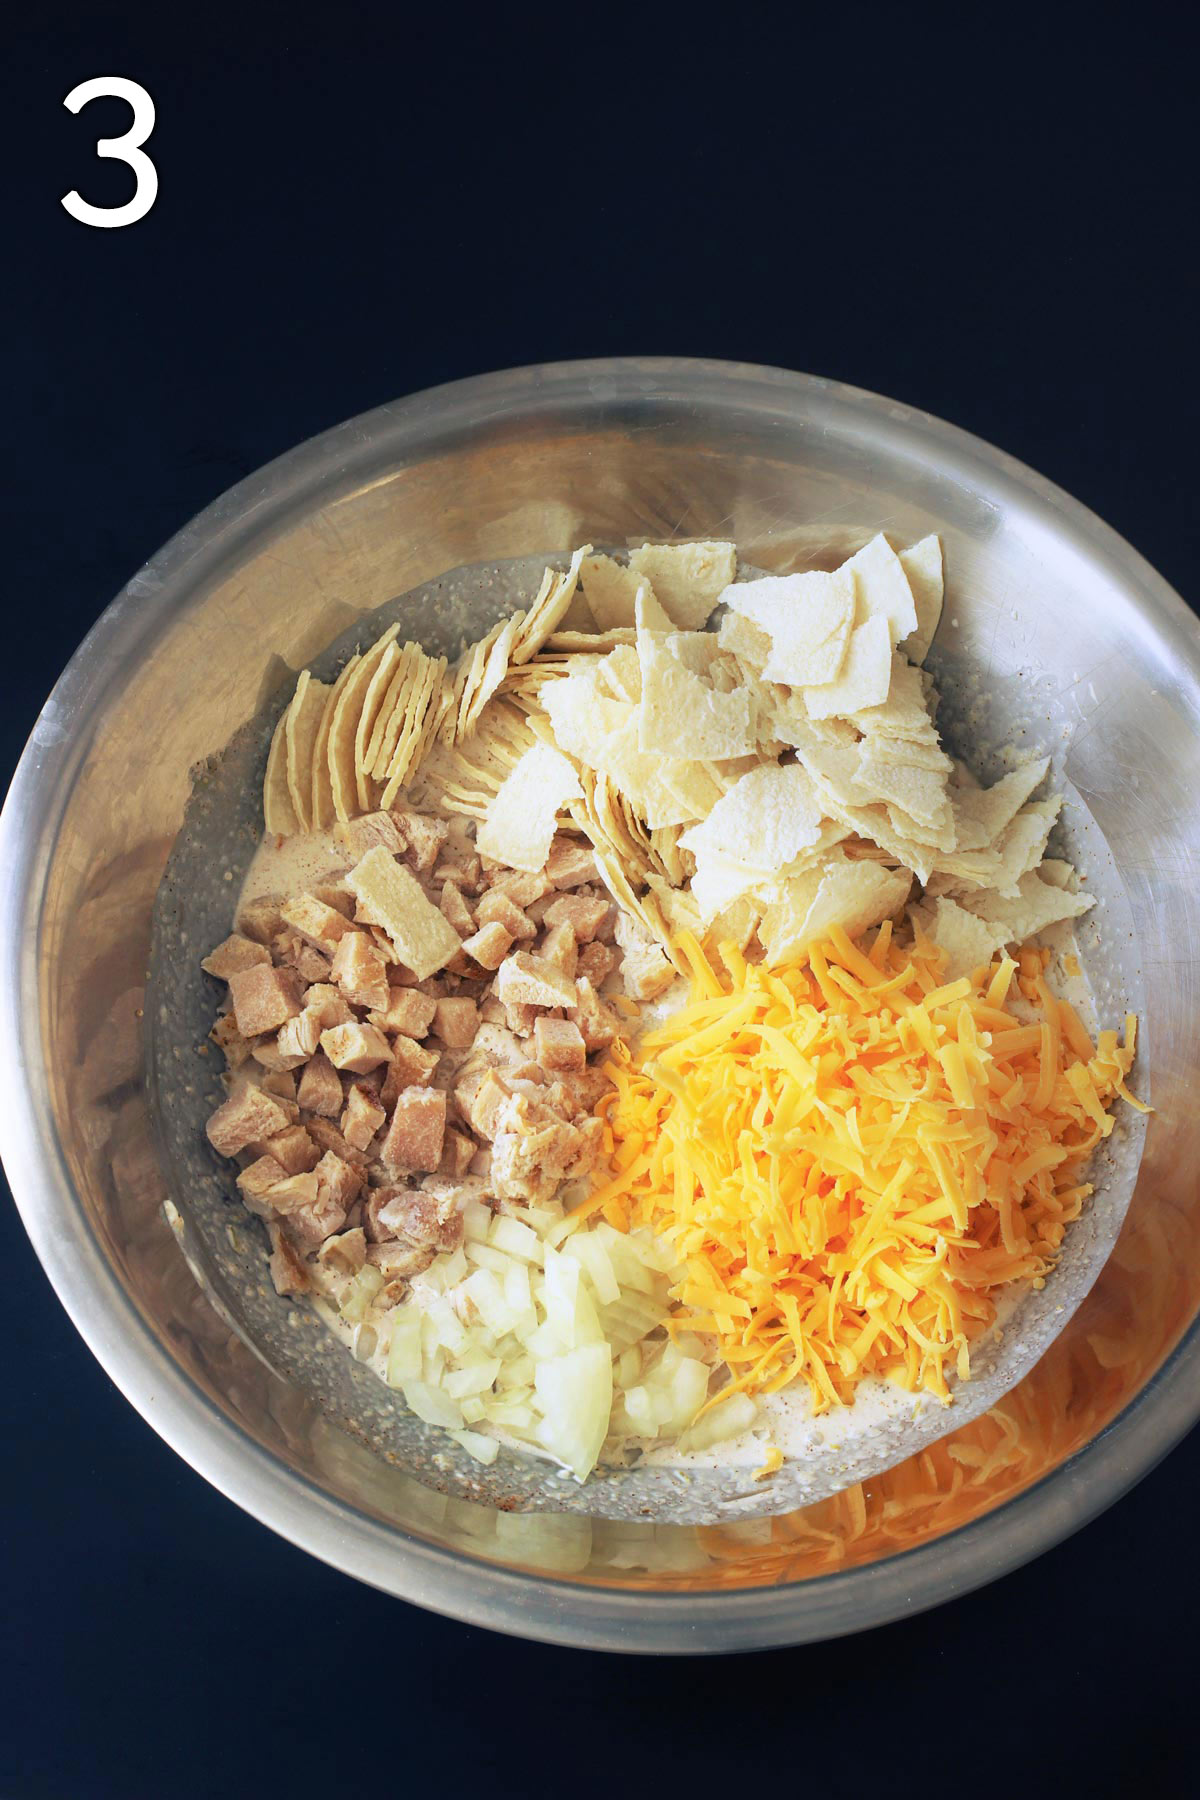 adding the chicken, tortillas, cheese, and onion to the sauce in the mixing bowl.